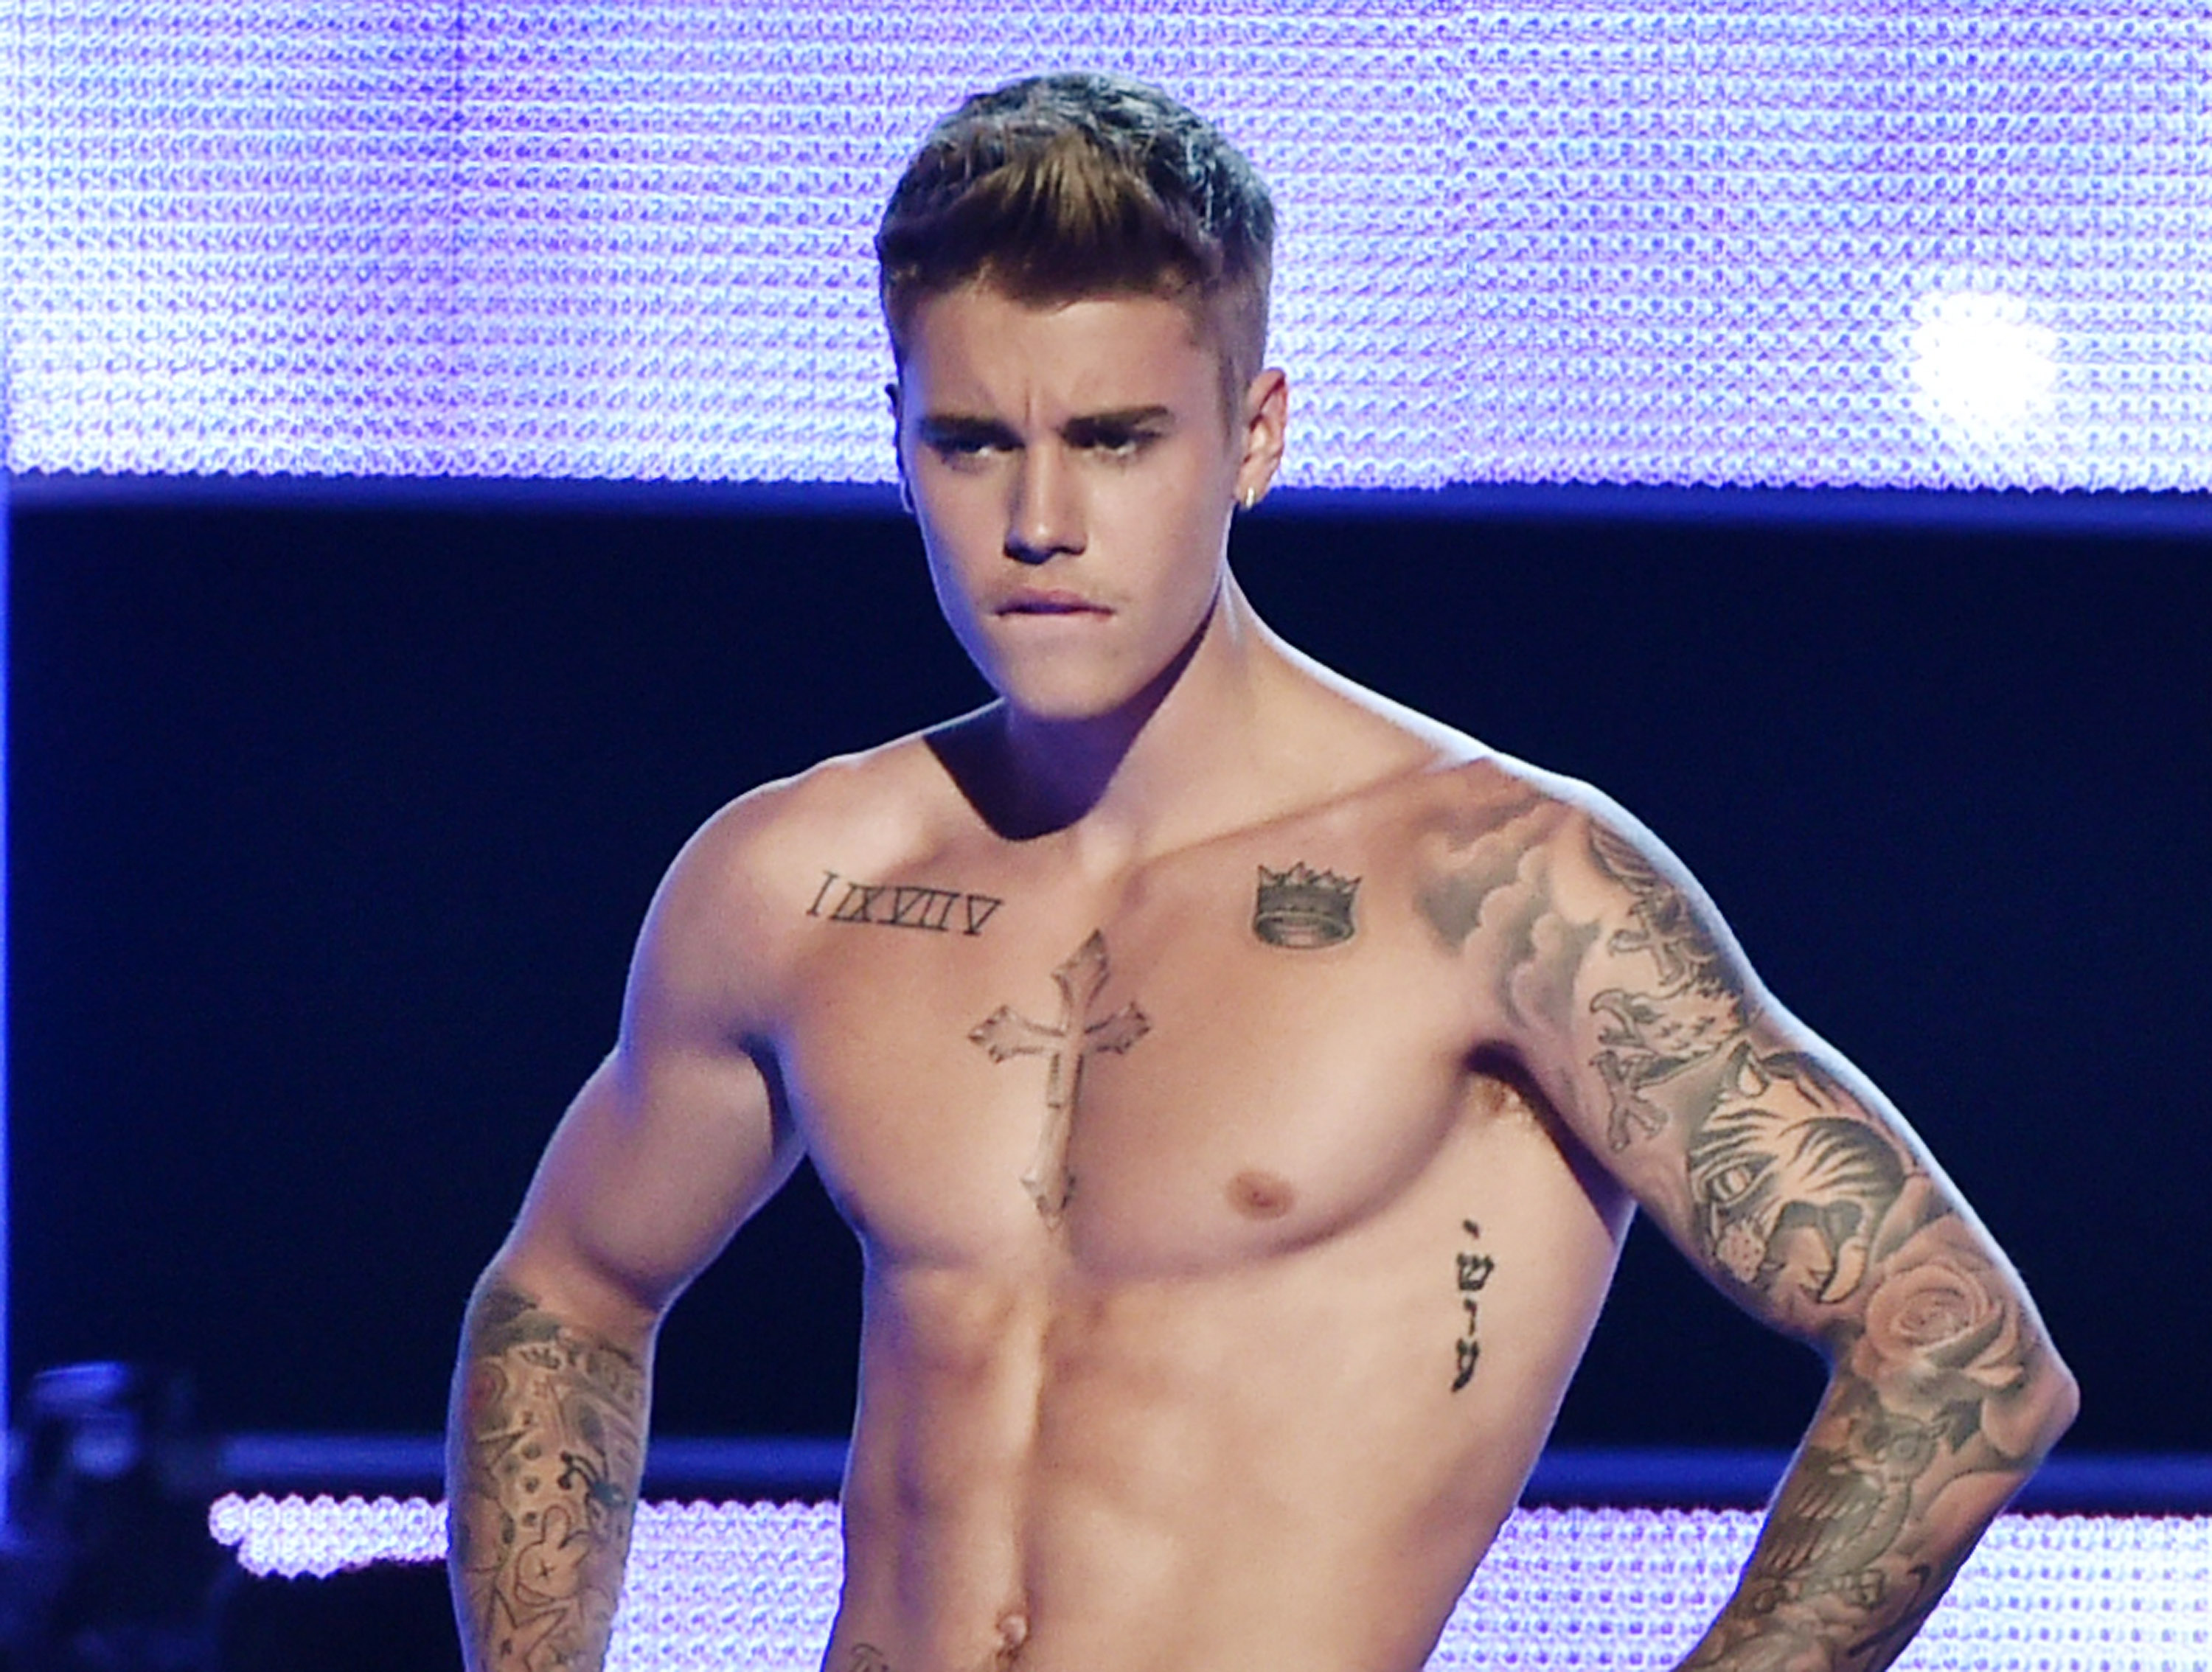 Singer-songwriter Justin Bieber presents onstage at Fashion Rocks 2014